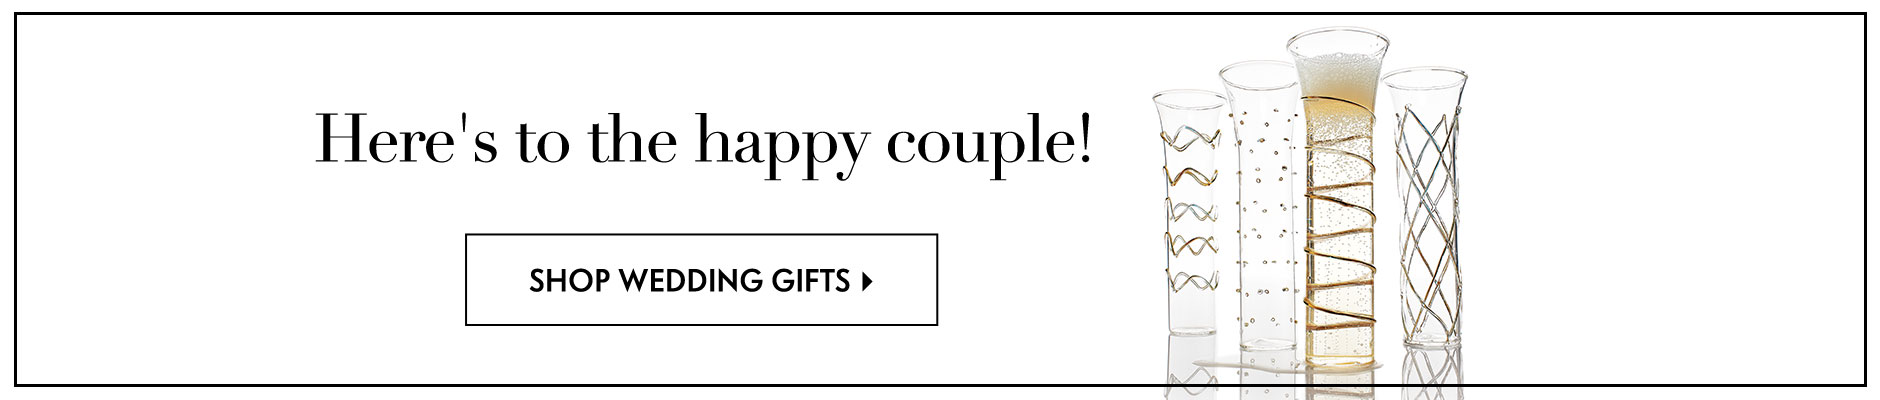 Here's to the happy couple! Shop Wedding Gifts